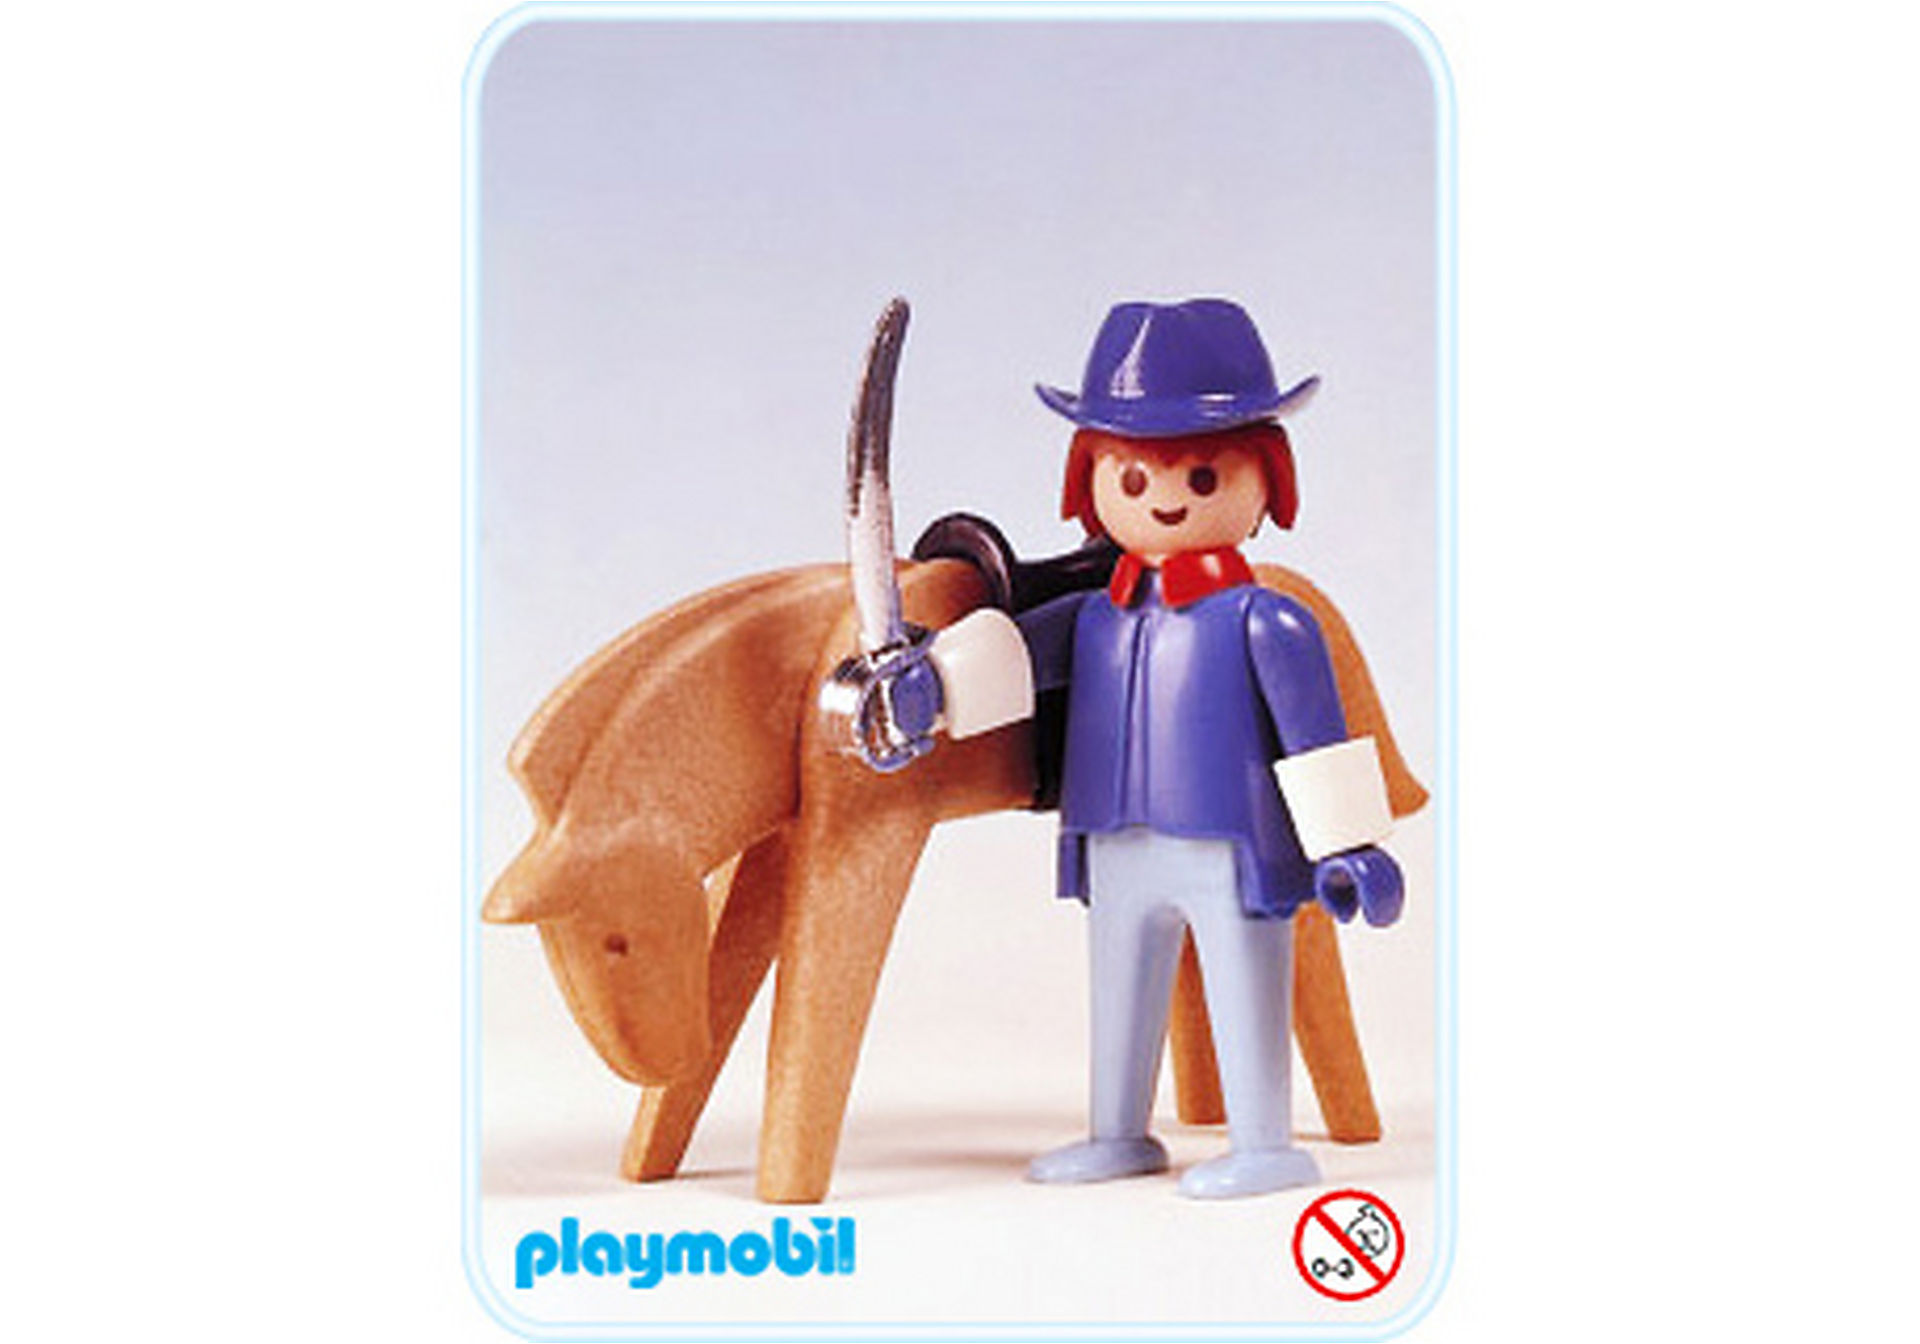 http://media.playmobil.com/i/playmobil/3353-A_product_detail/Officier américain / cheval